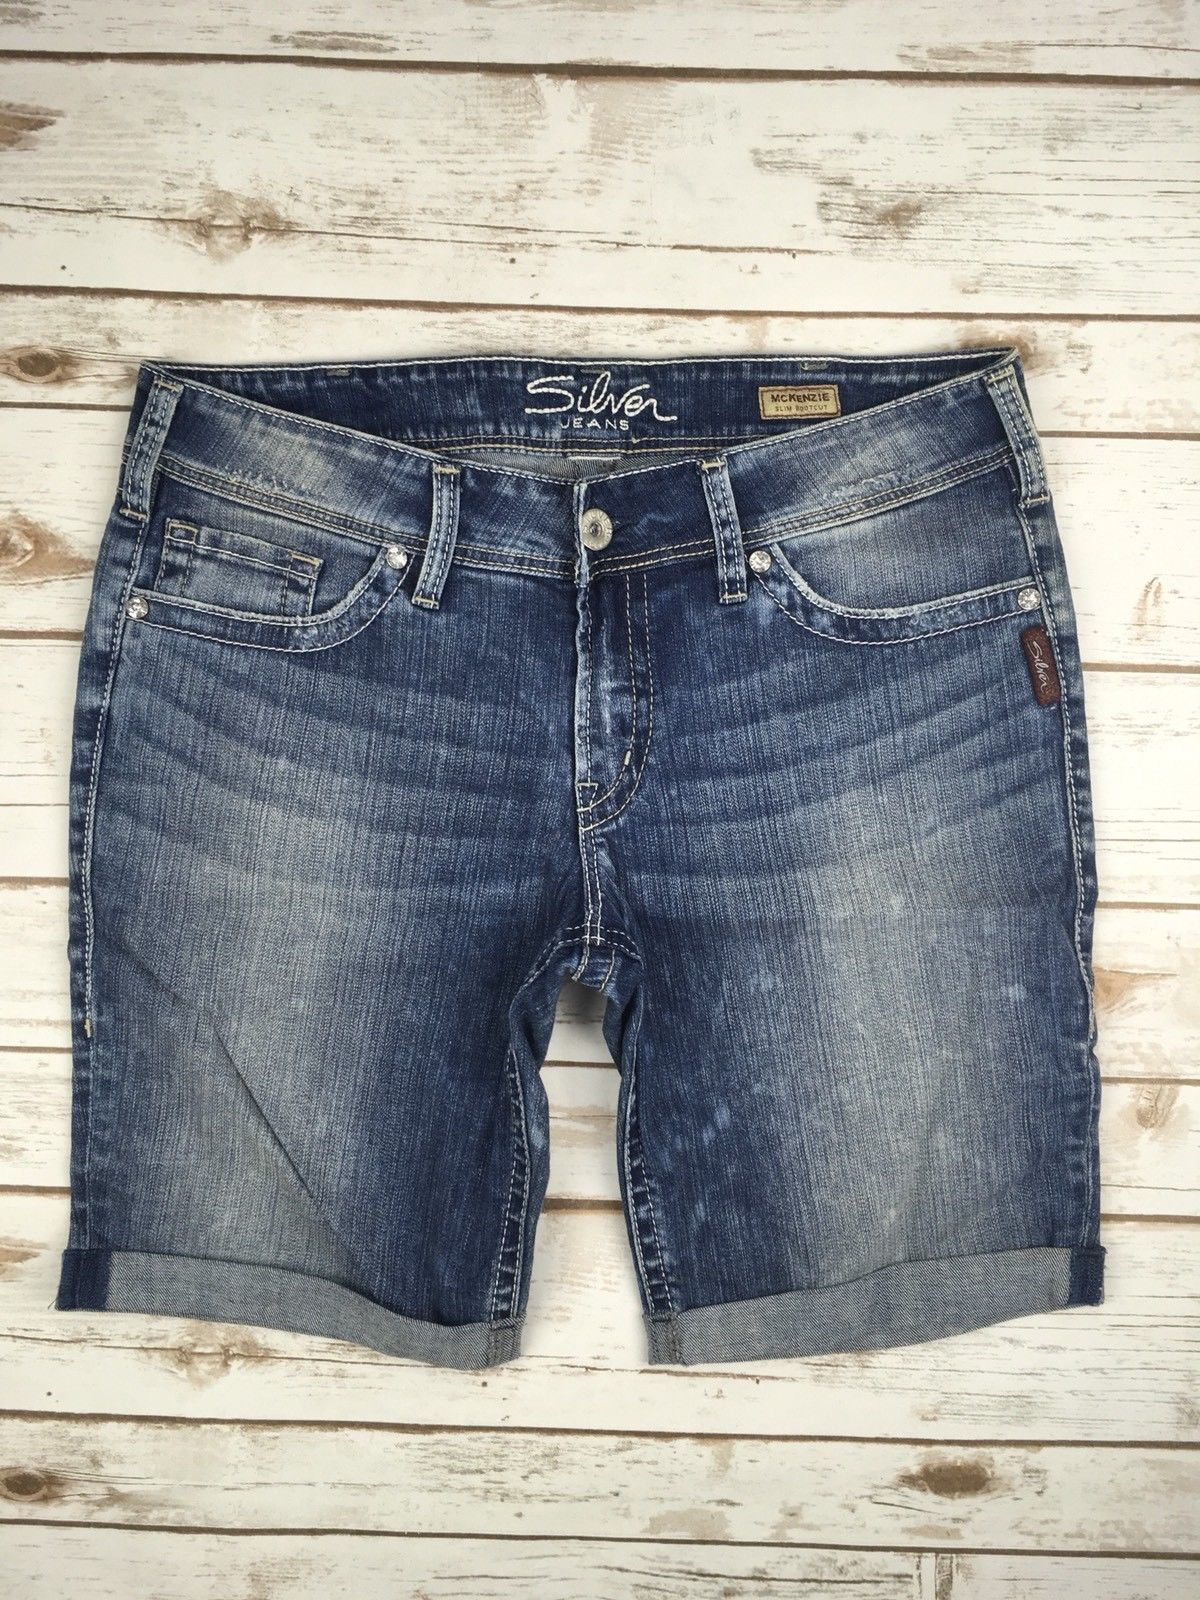 SILVER JEANS SHORTS Low Rise Embroidered Mckenzie Jean Cuffed Denim Shorts 32